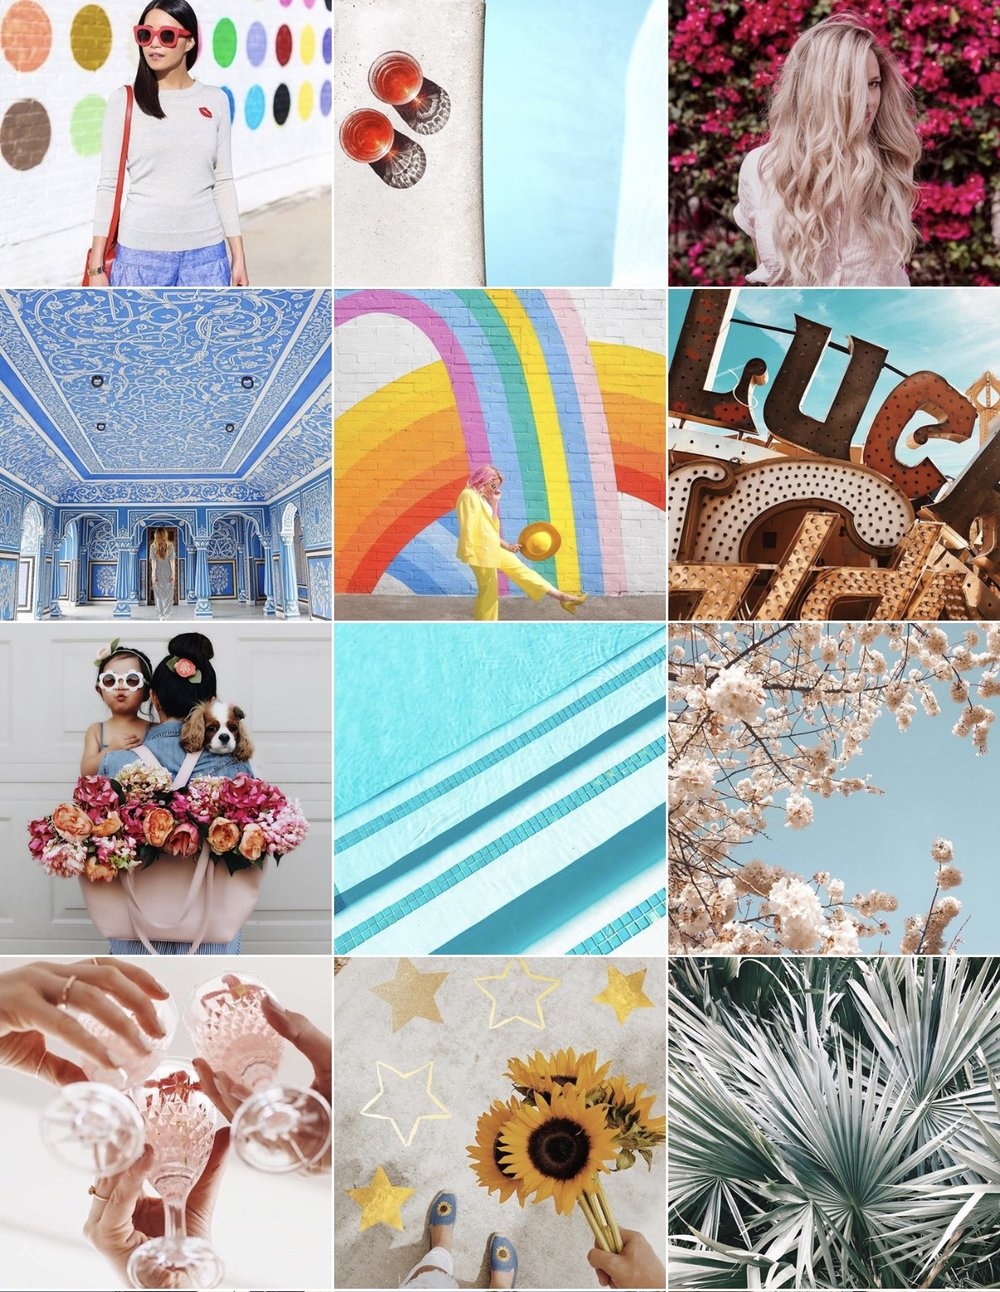 Instagram:  A Color Story  So this is also a great photo editing app, so it's only fitting that their feed is gorgeous and colorful